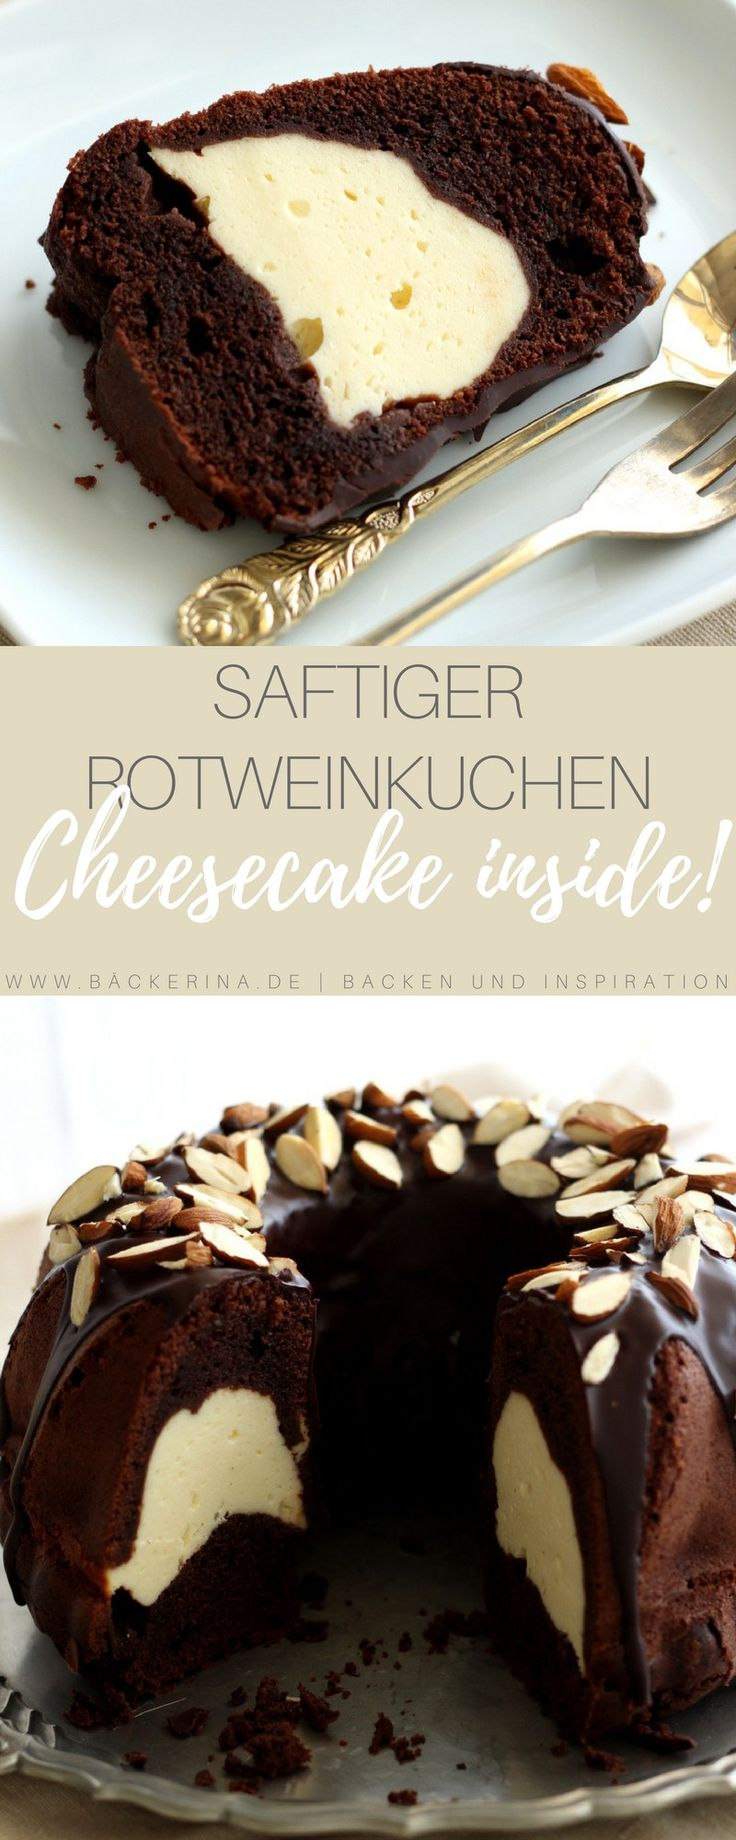 best 25 backen ideas on pinterest kuchen almased before and after and rezepte. Black Bedroom Furniture Sets. Home Design Ideas